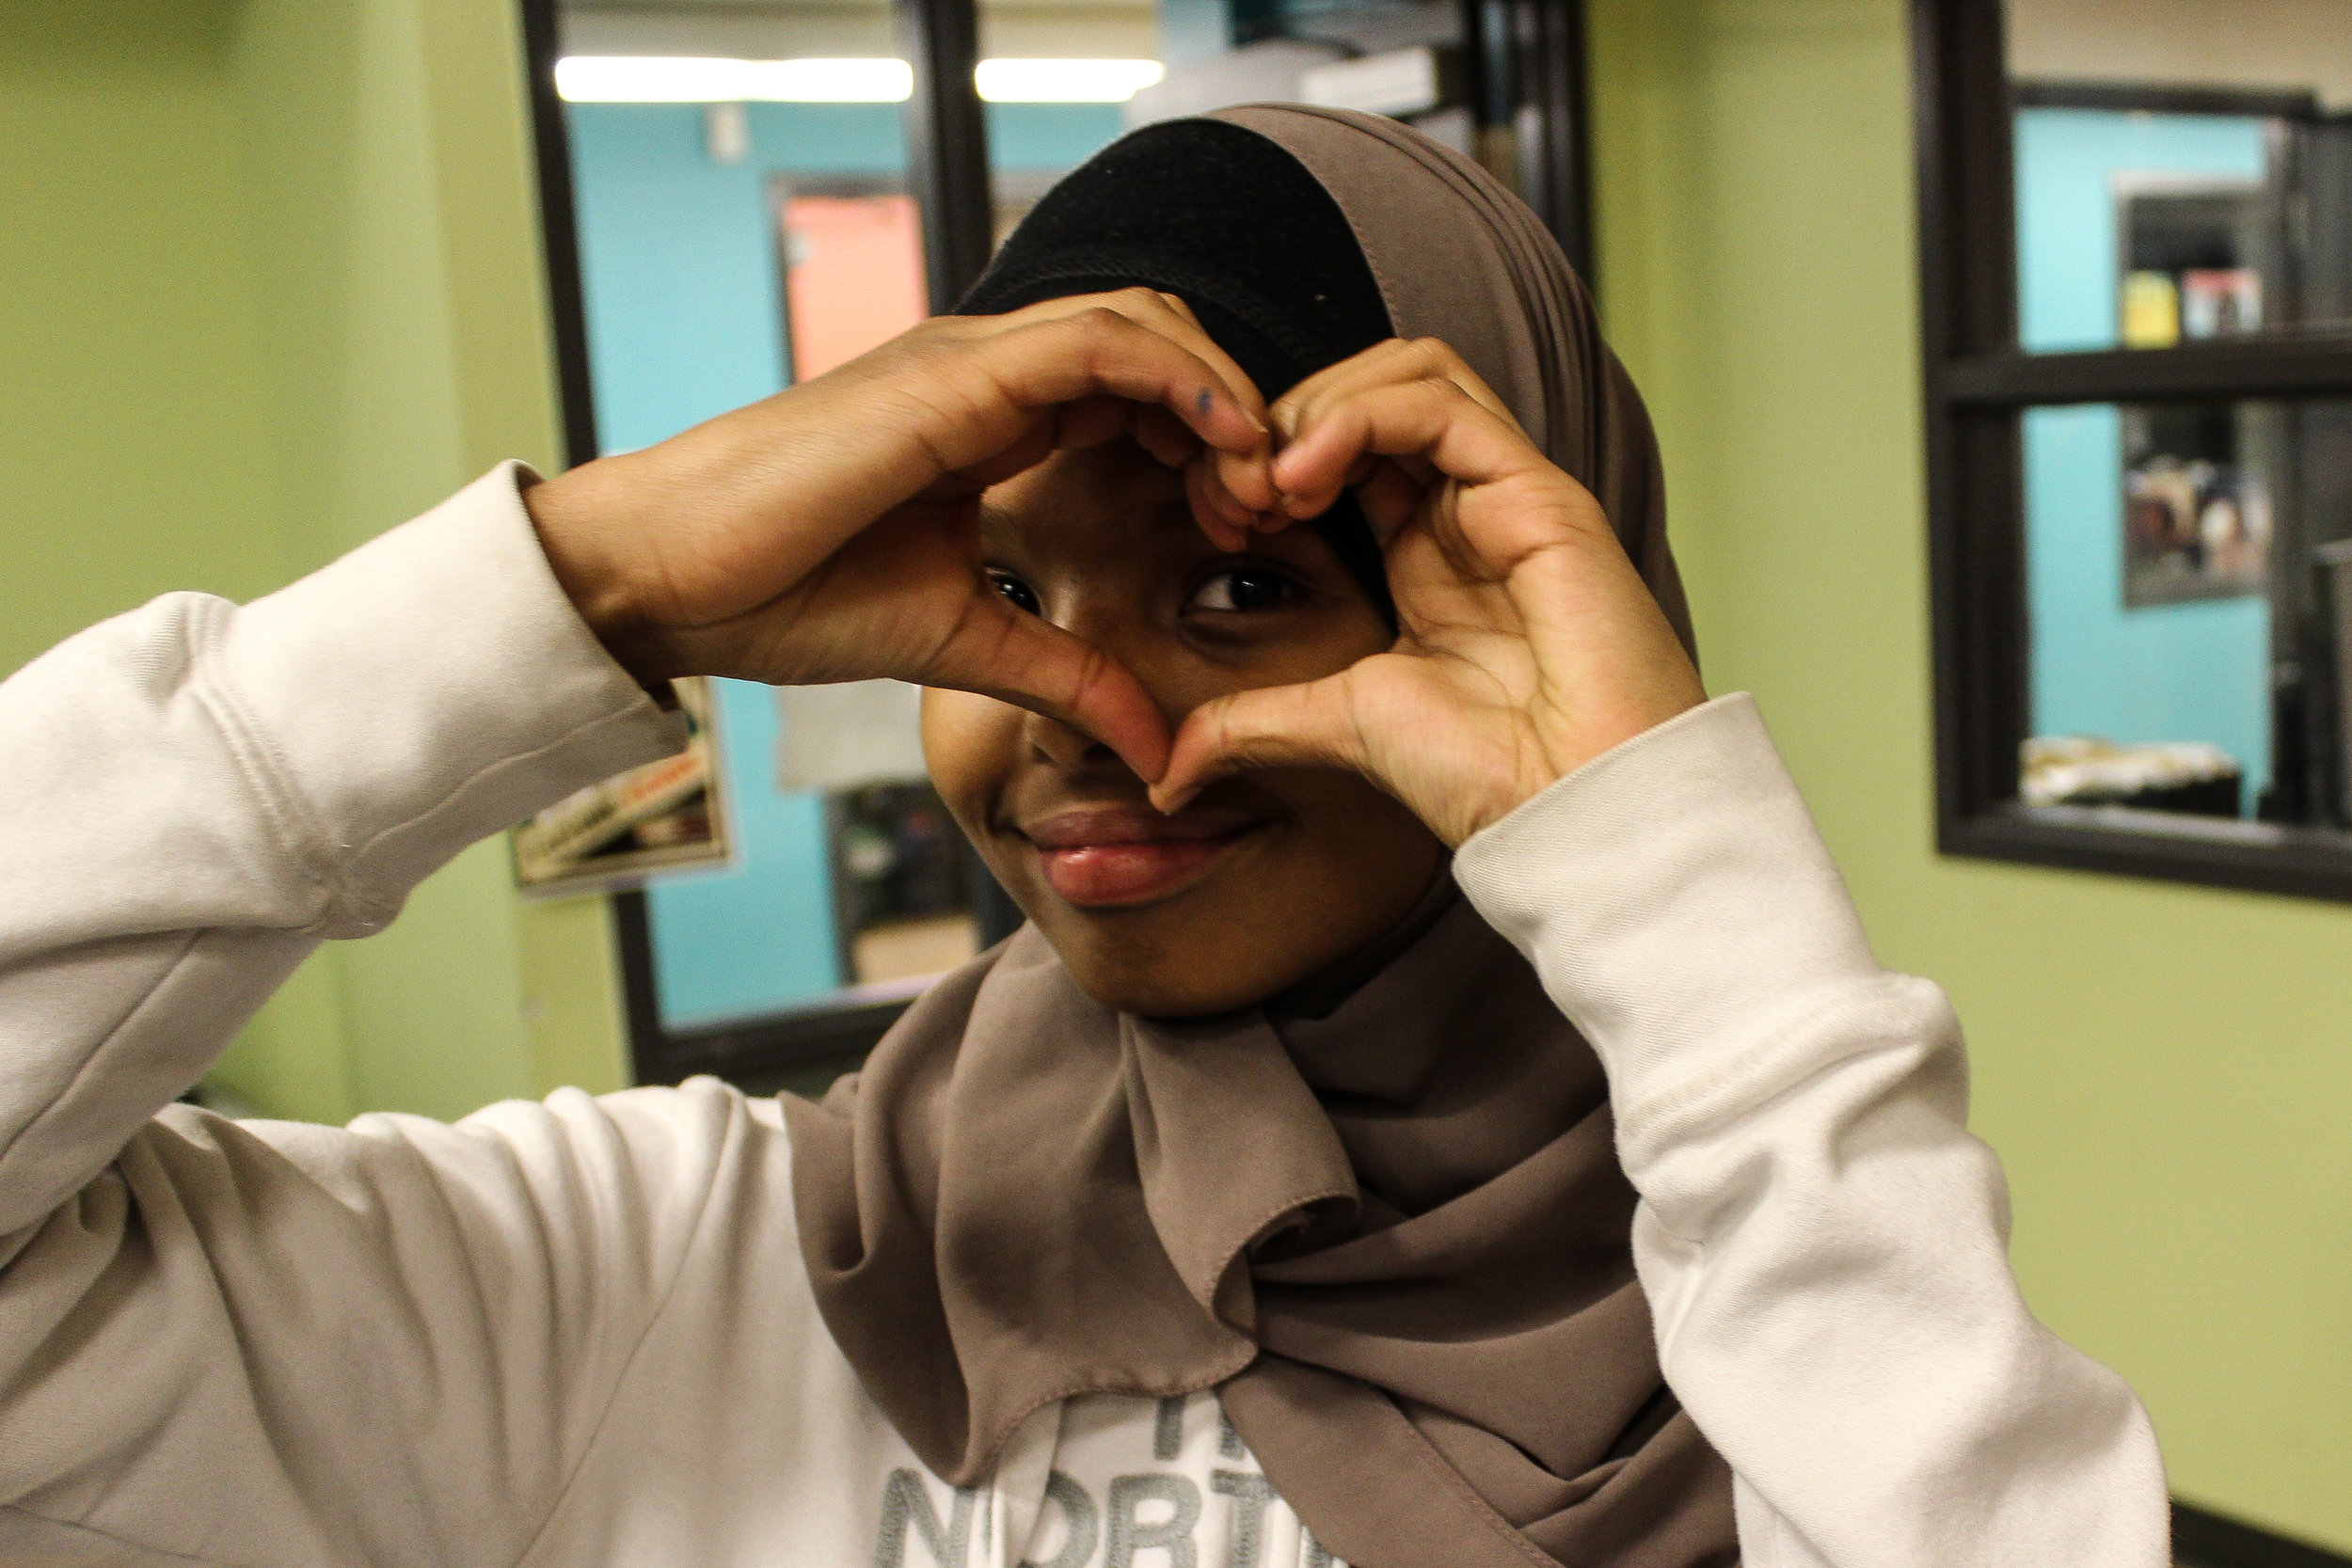 Middle school student making a heart shape with their hands over one eye.